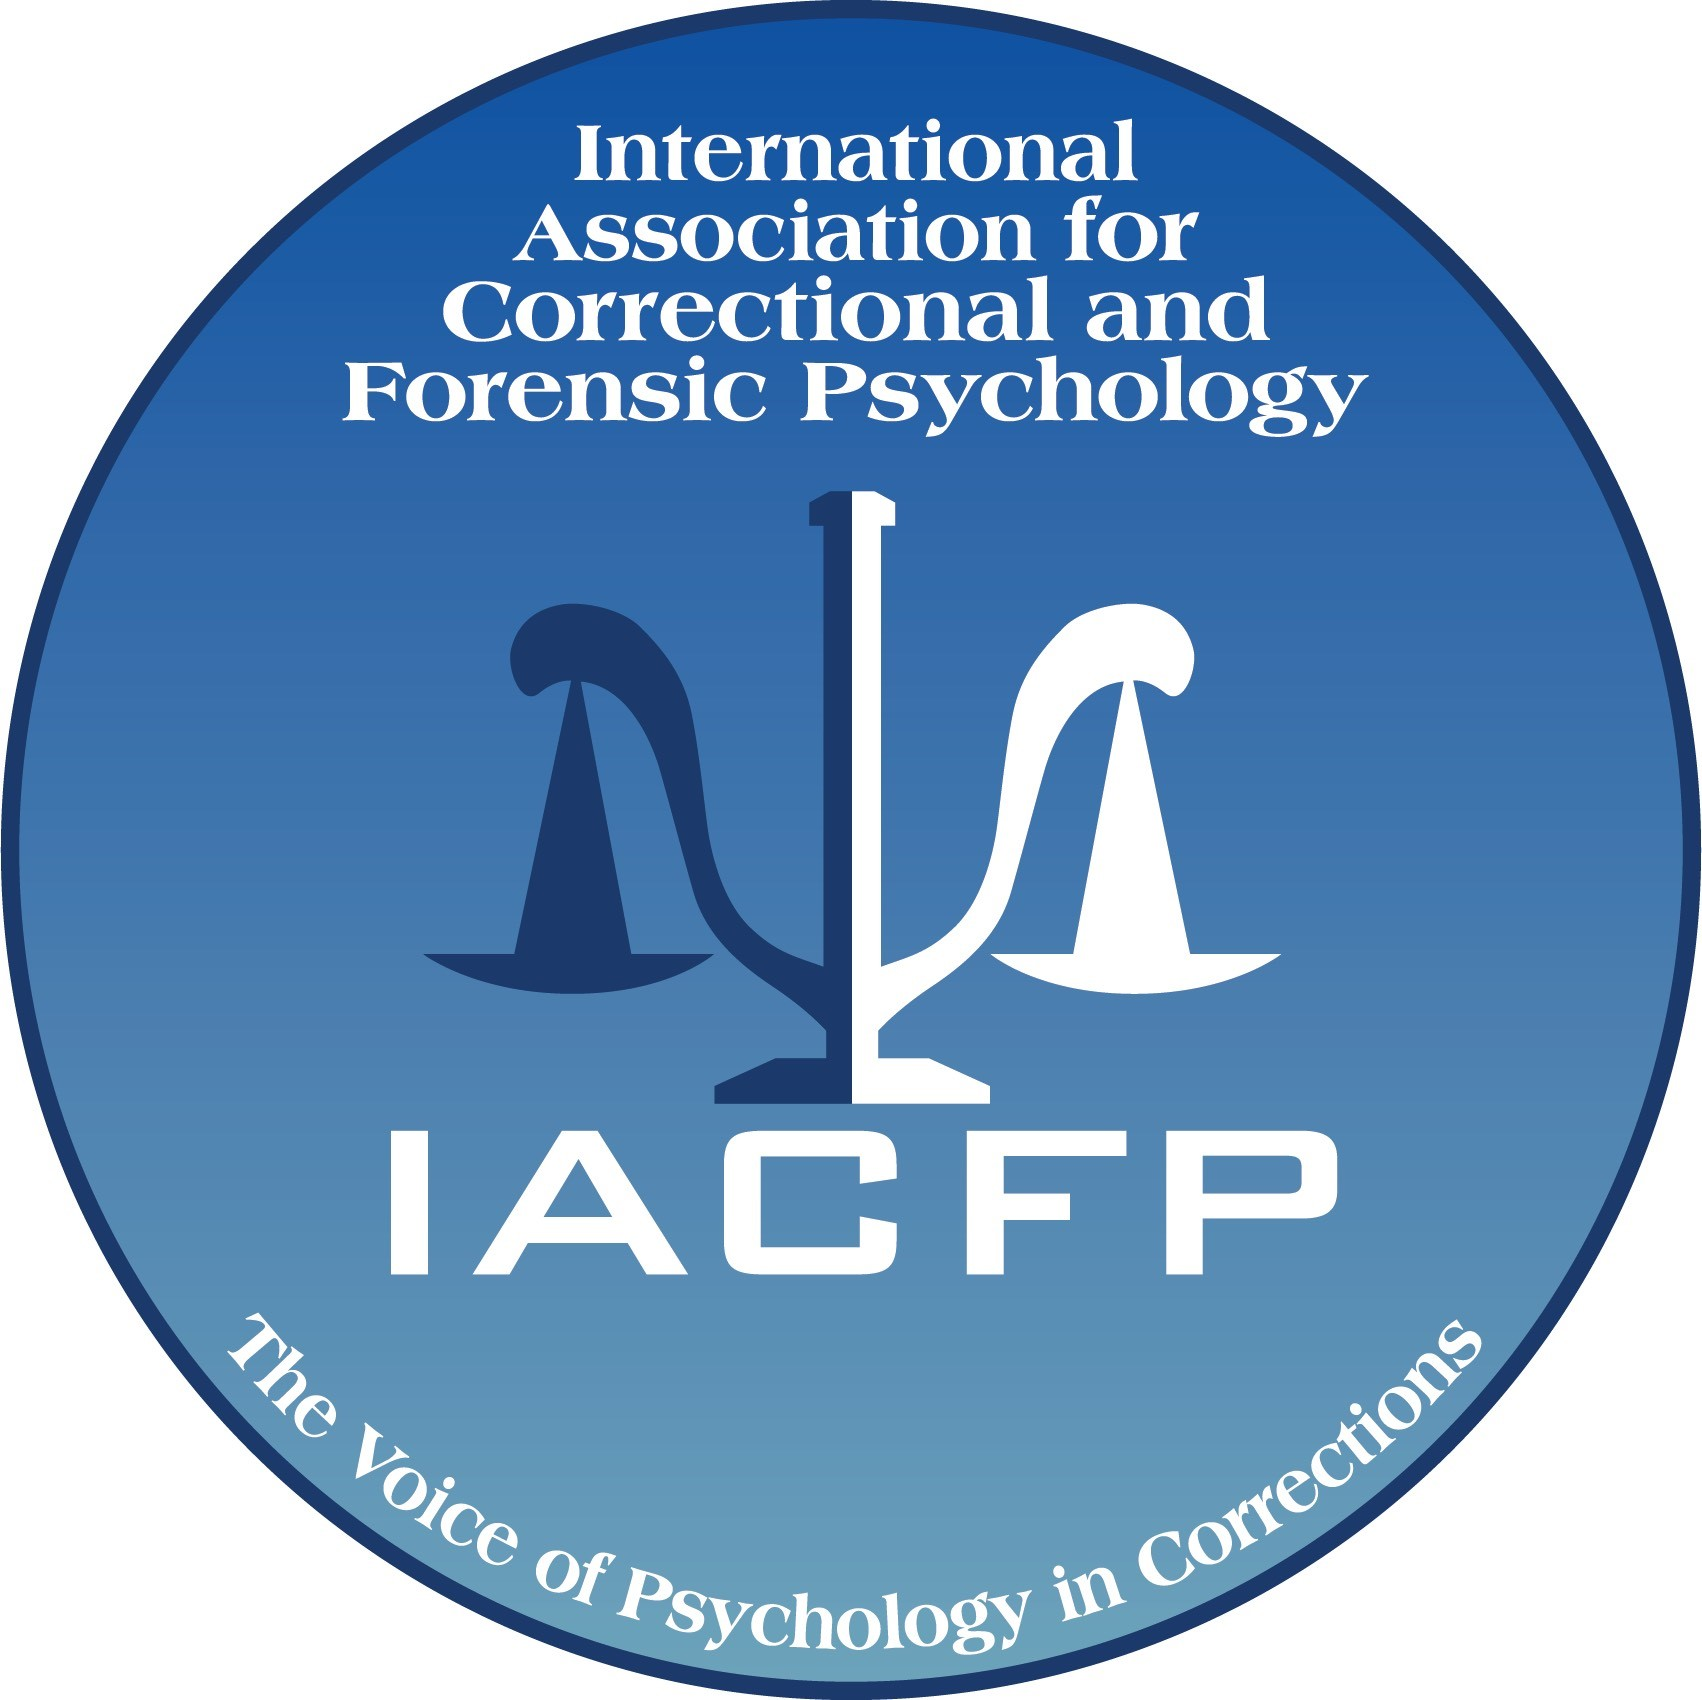 IACFP - International Association for Correctional and Forensic Psychology